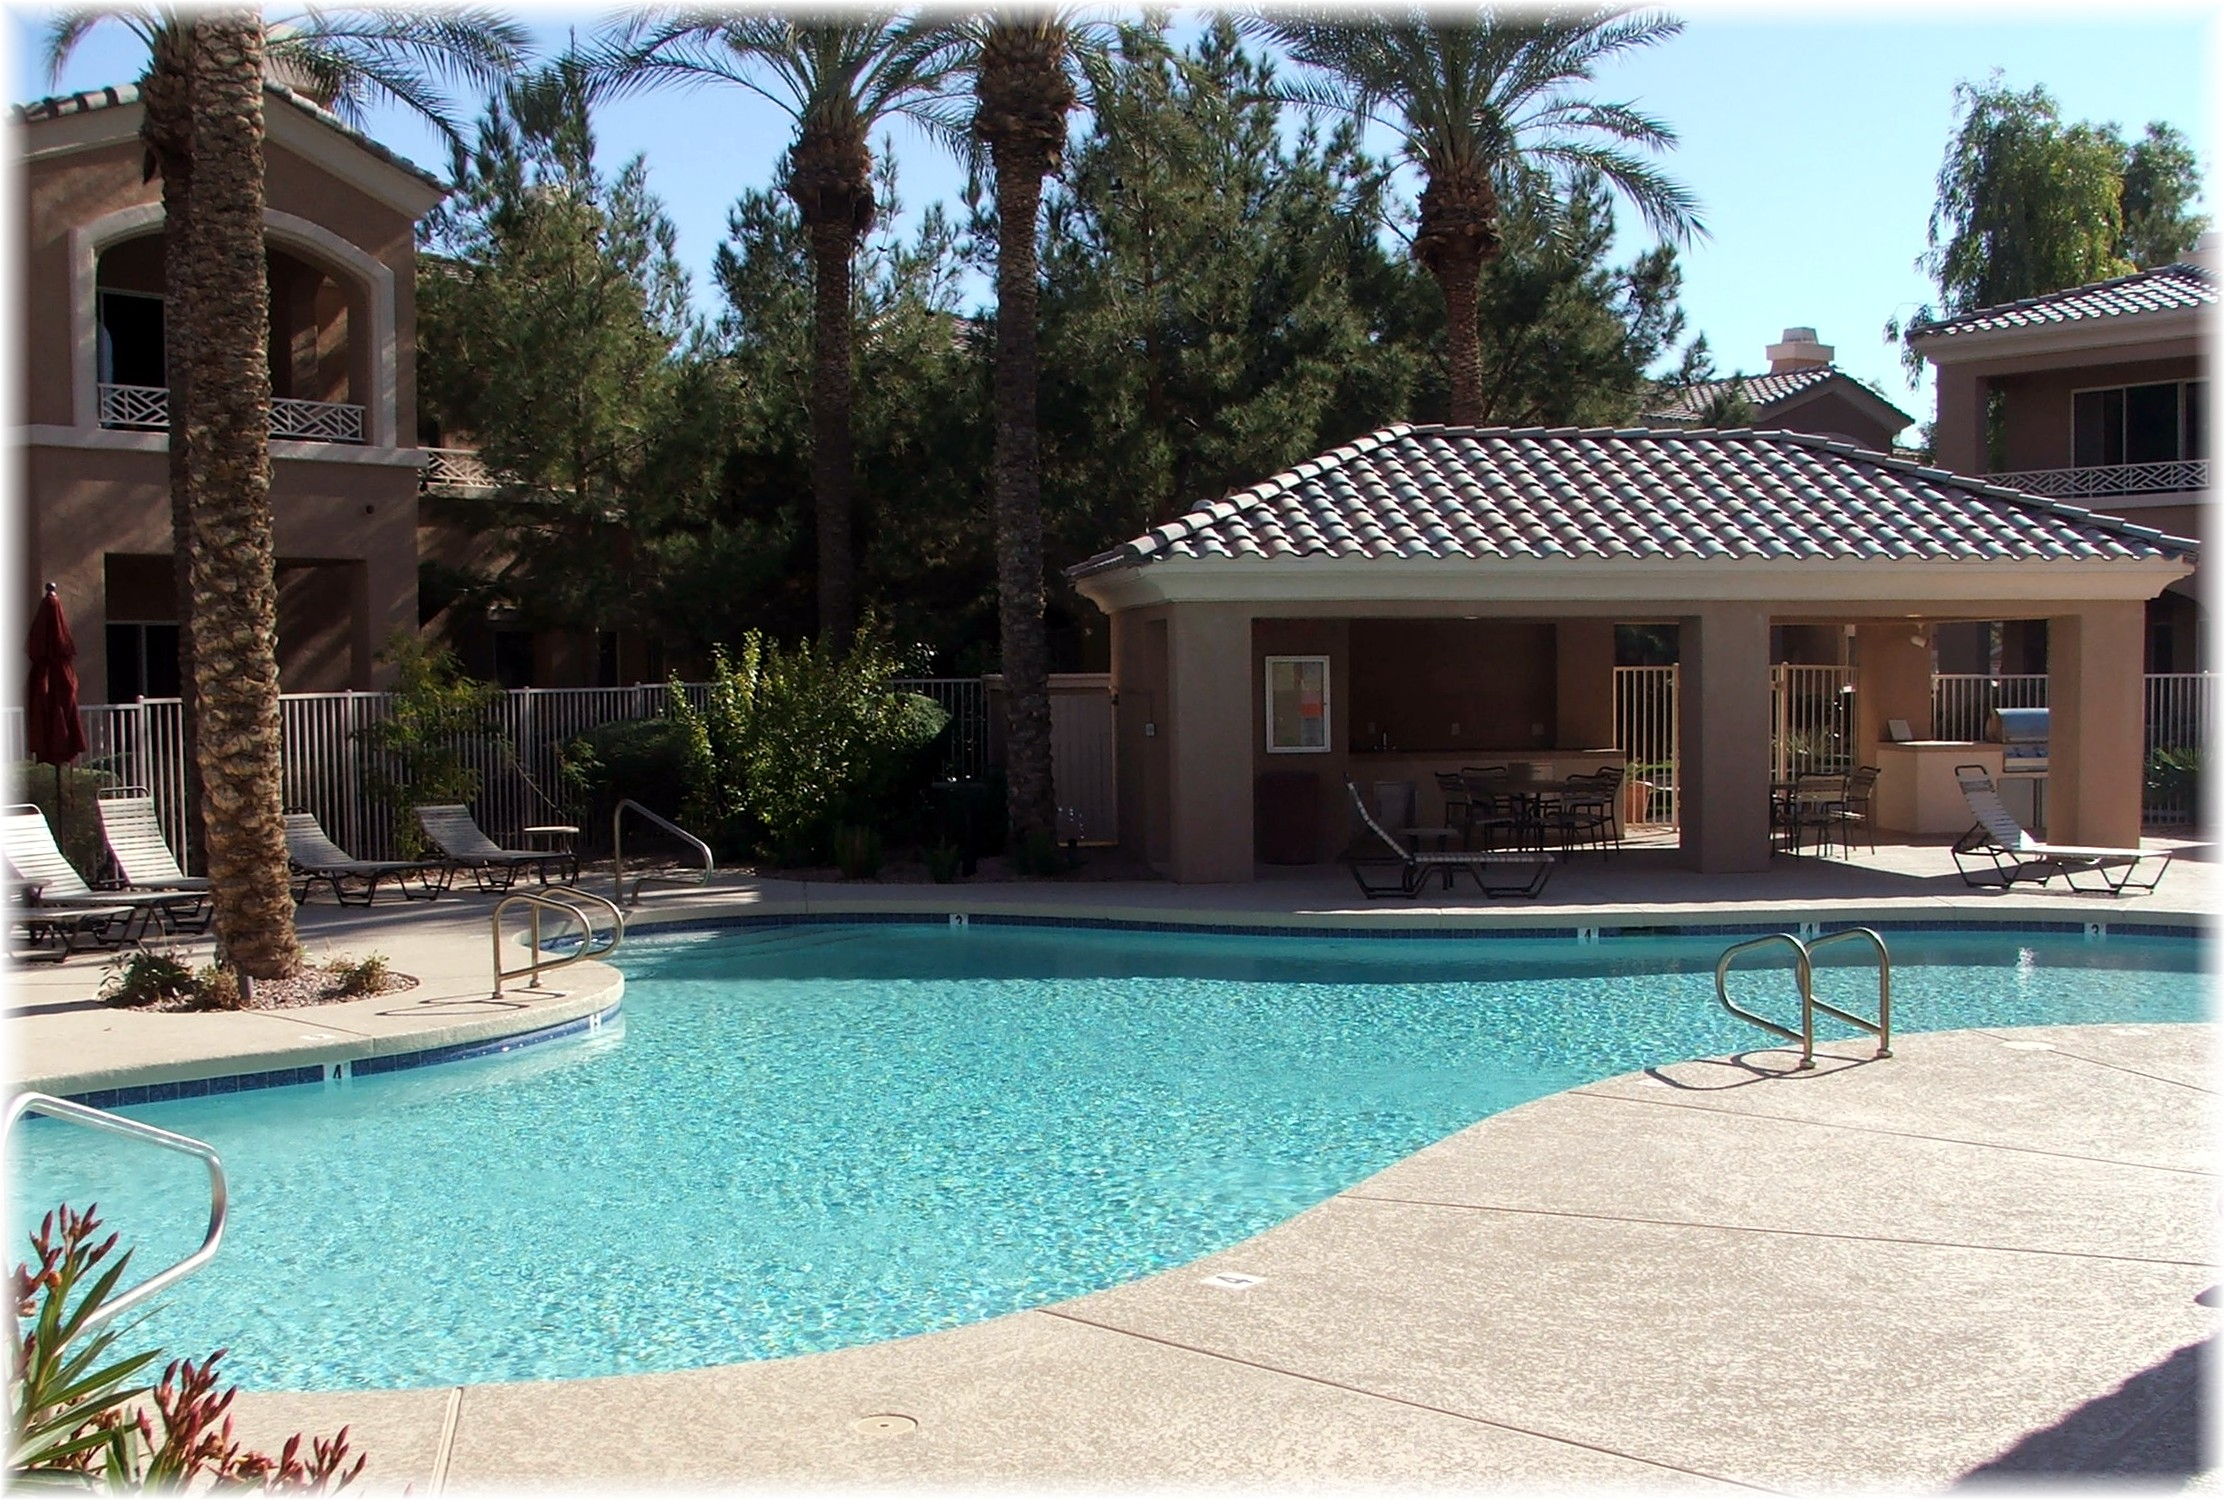 Phoenix arizona waterfront homes cantabria community pool for Cantabria homes